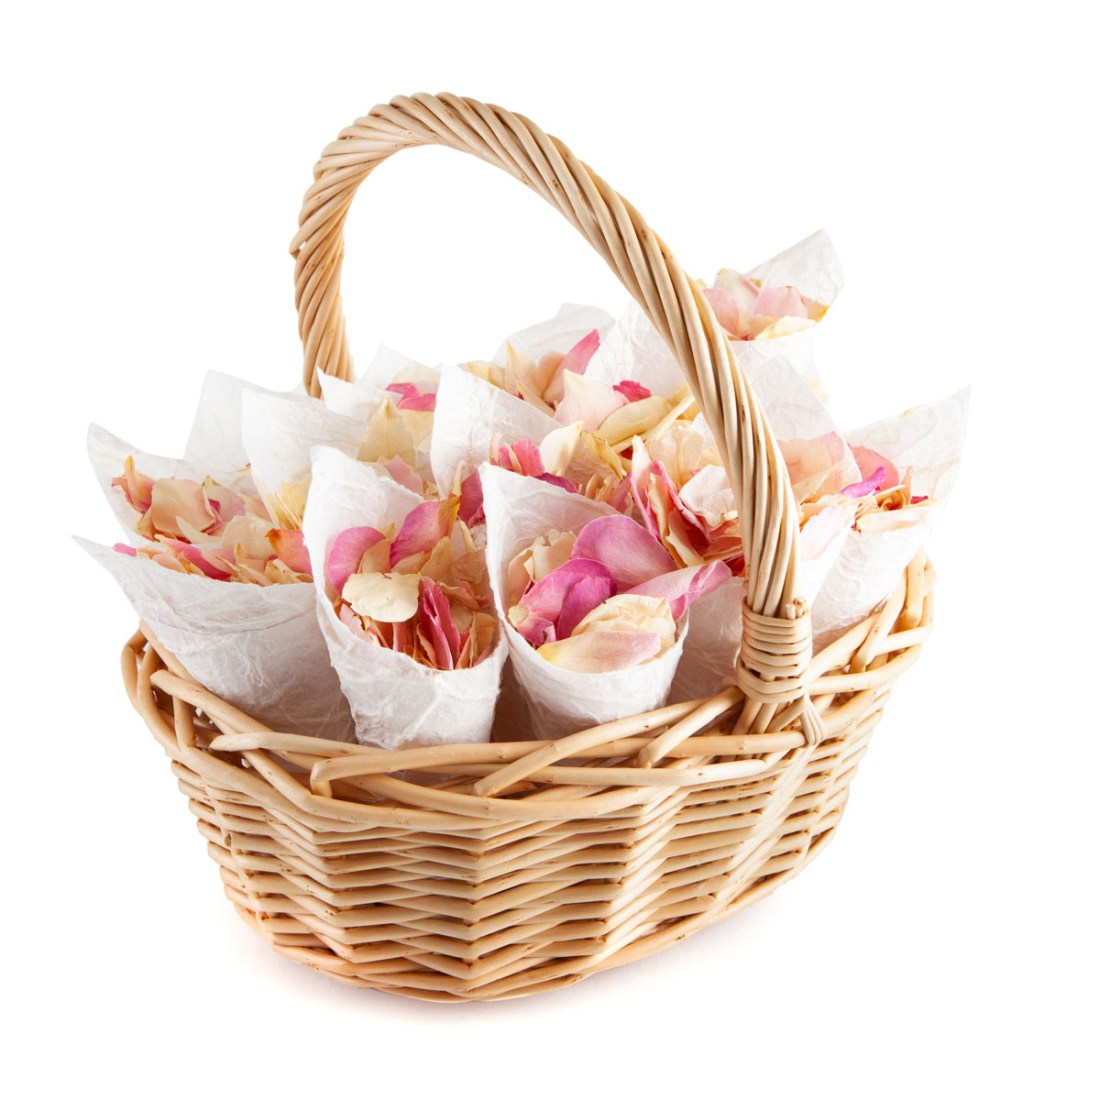 Flower Girl Basket - Soft Pinks Rose Petals